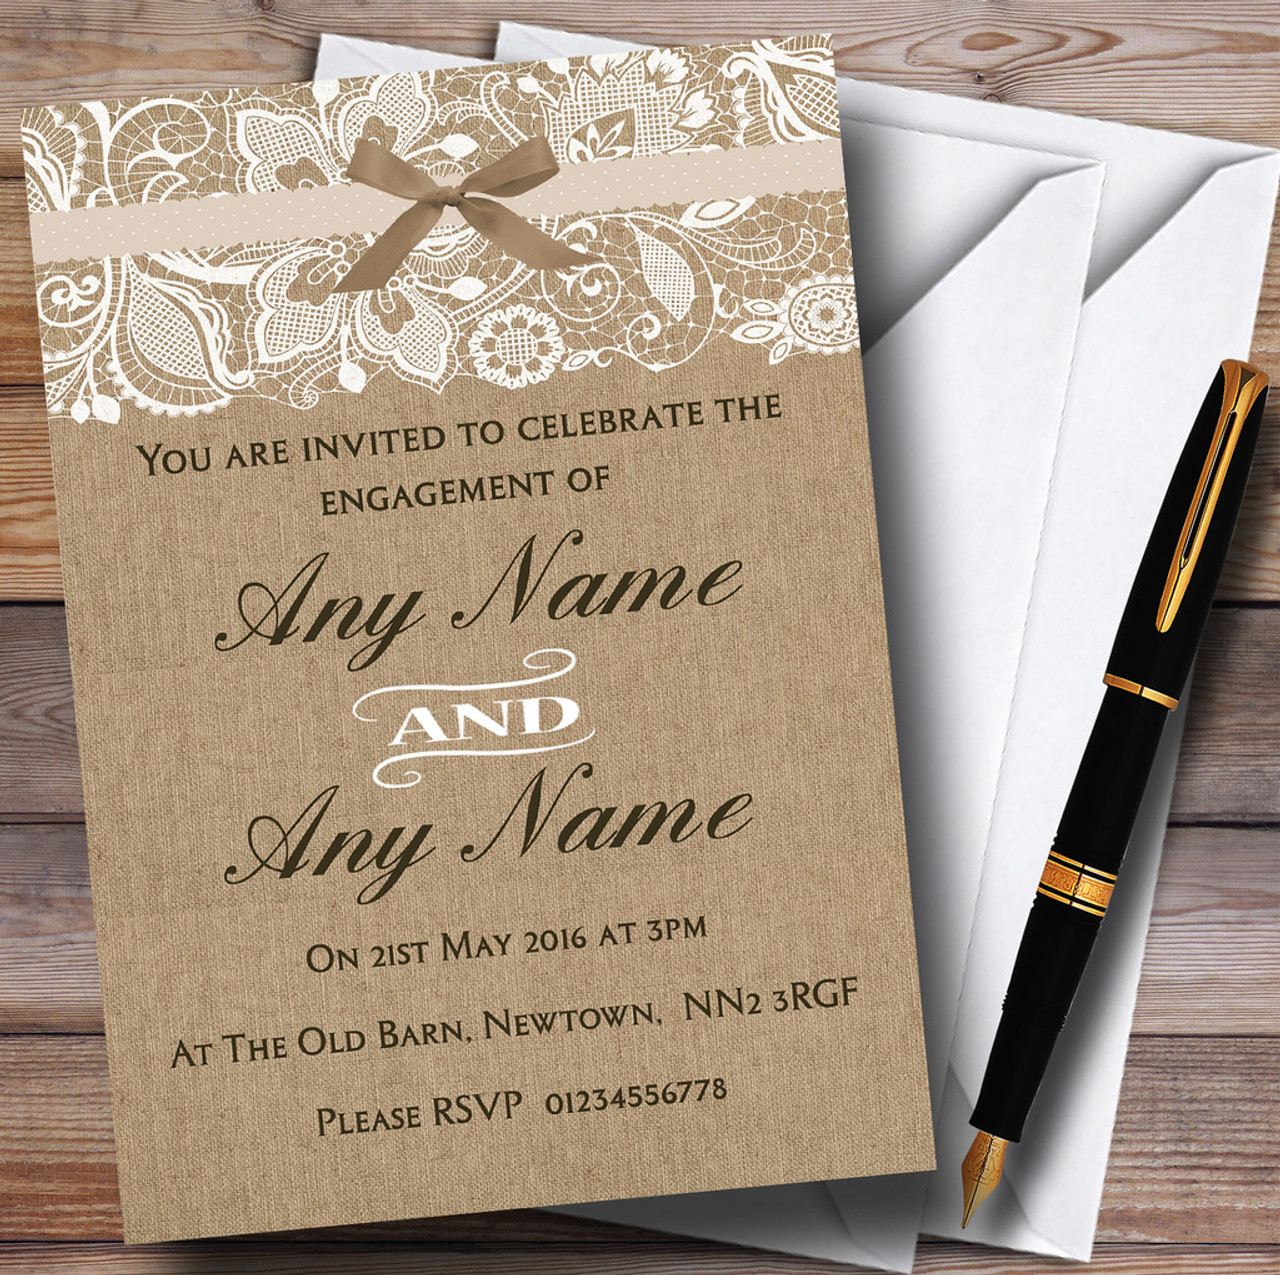 Personalised Party Invitations Page 1 The Card Zoo – Personalised Party Invites